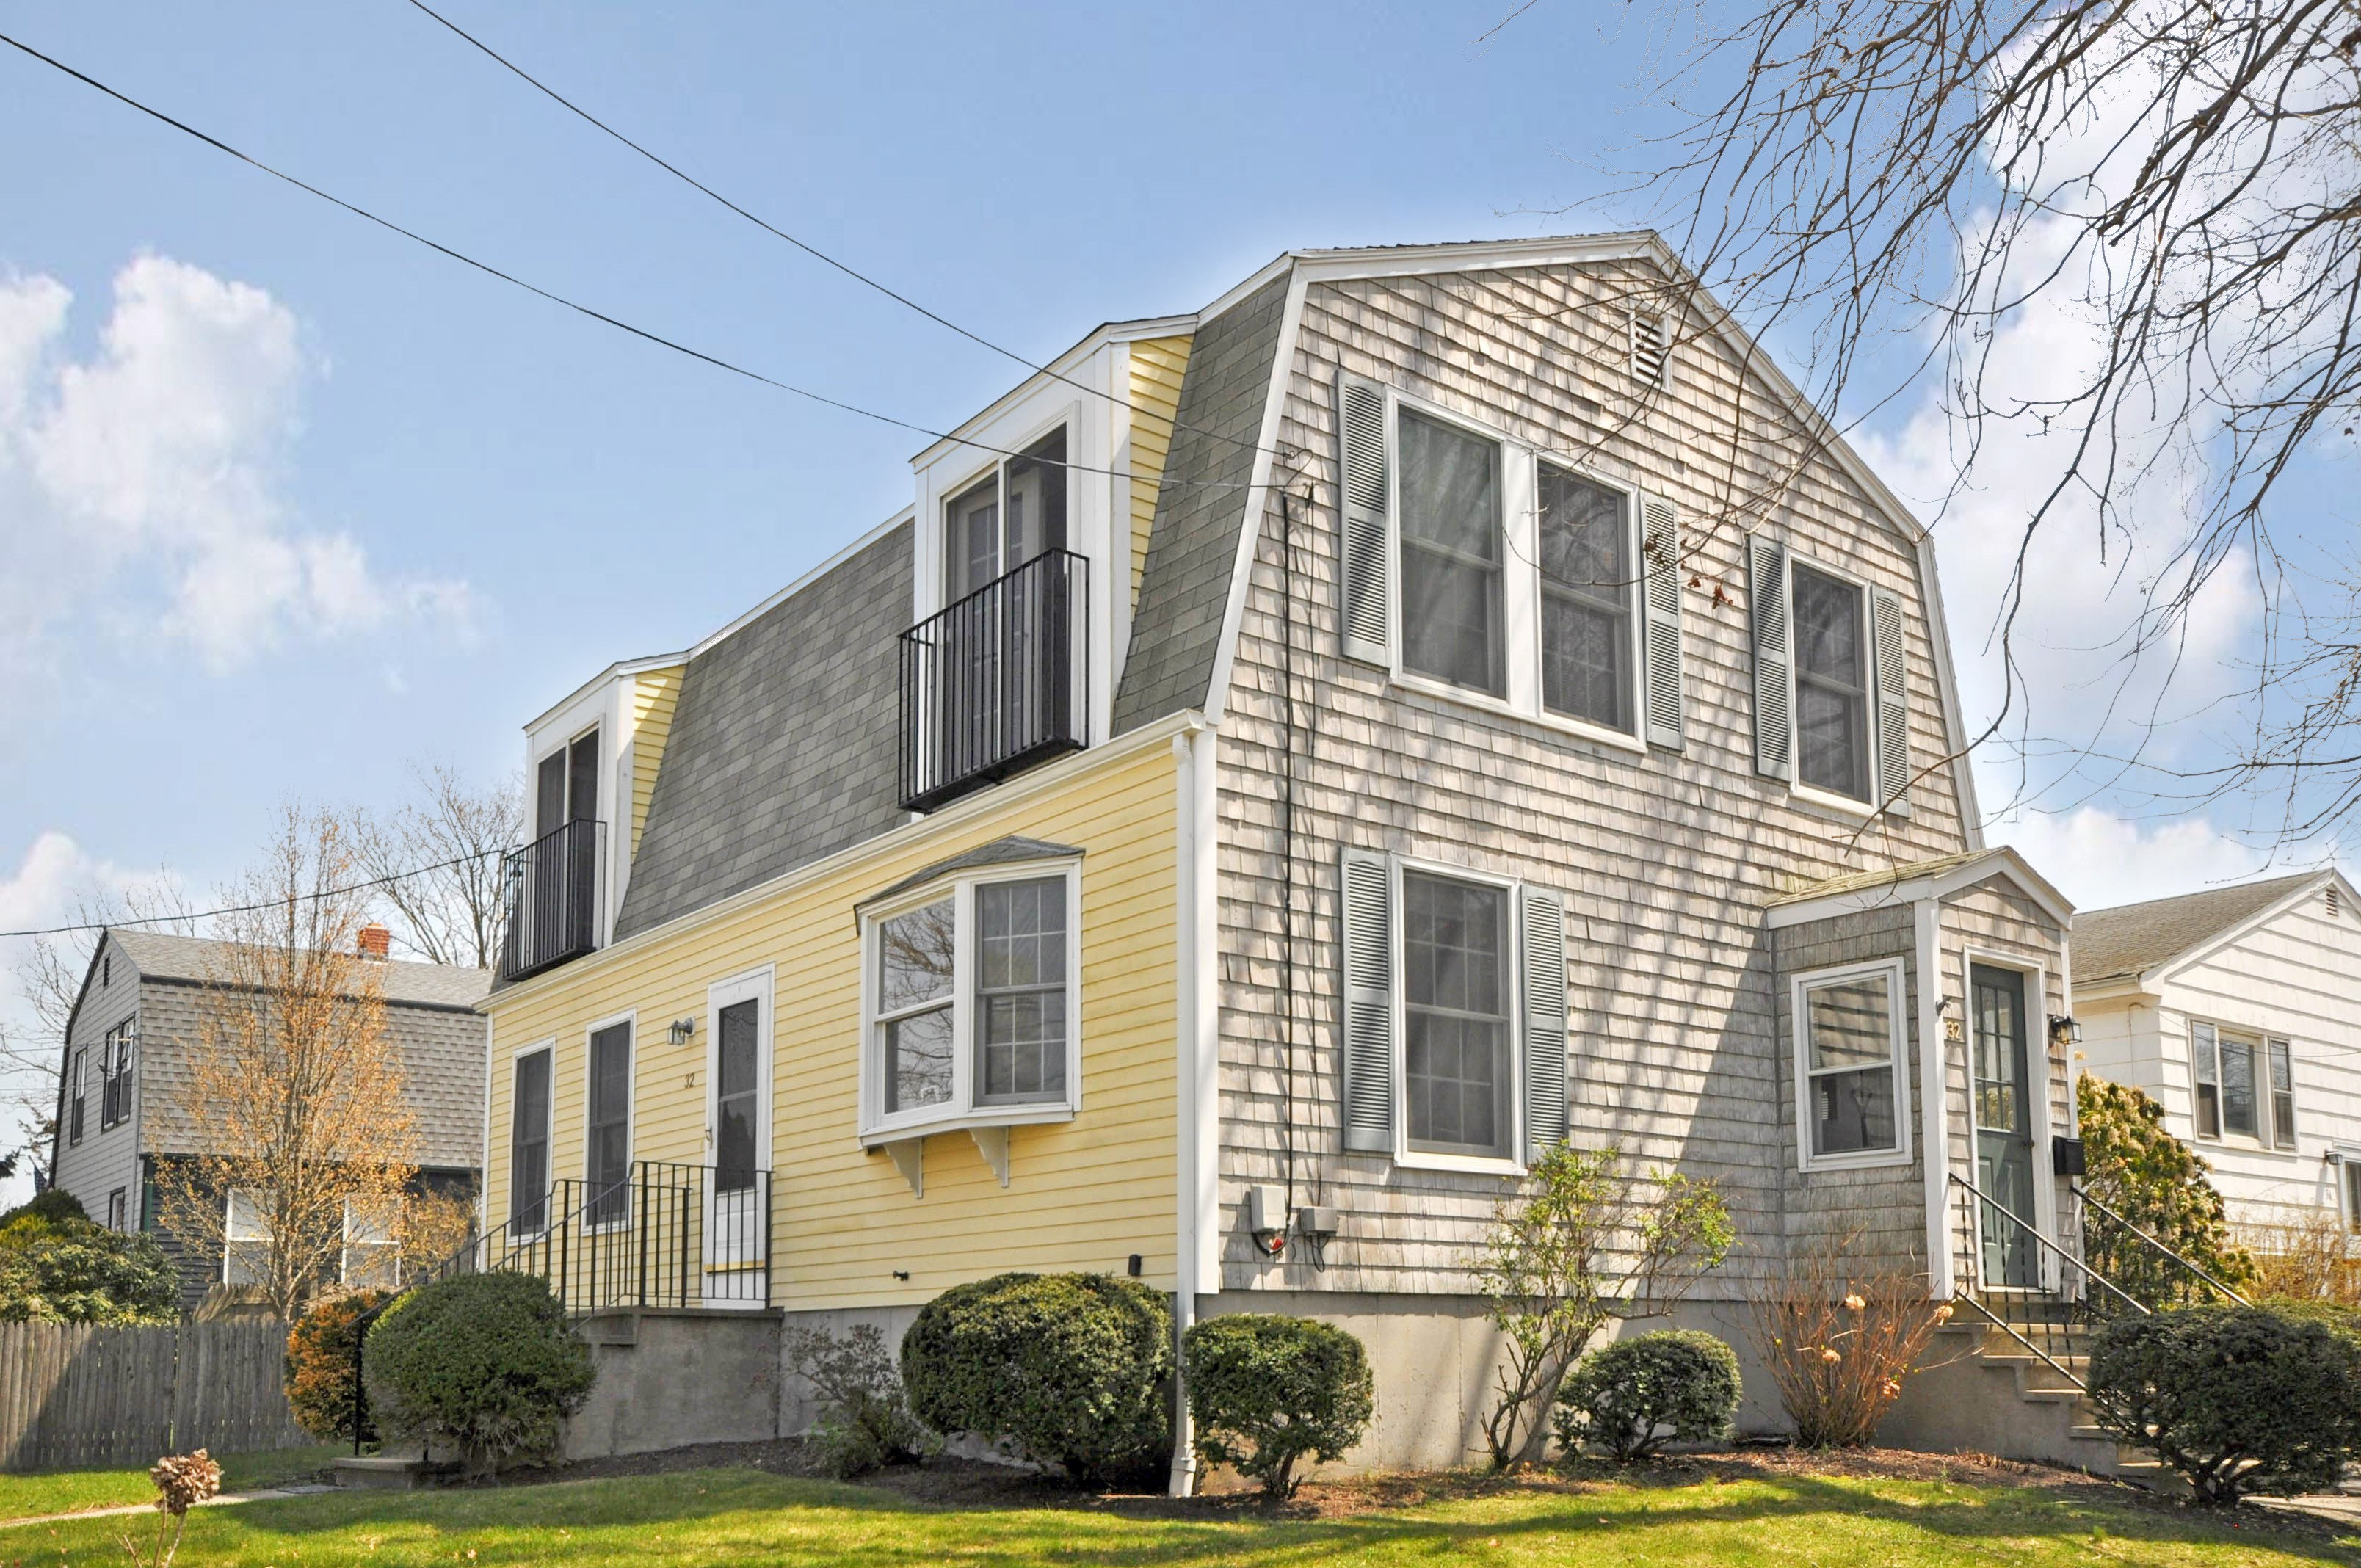 Single Family Home for Sale at Charming Colonial with Water Views 32 Roseneath Avenue Newport, Rhode Island, 02840 United States